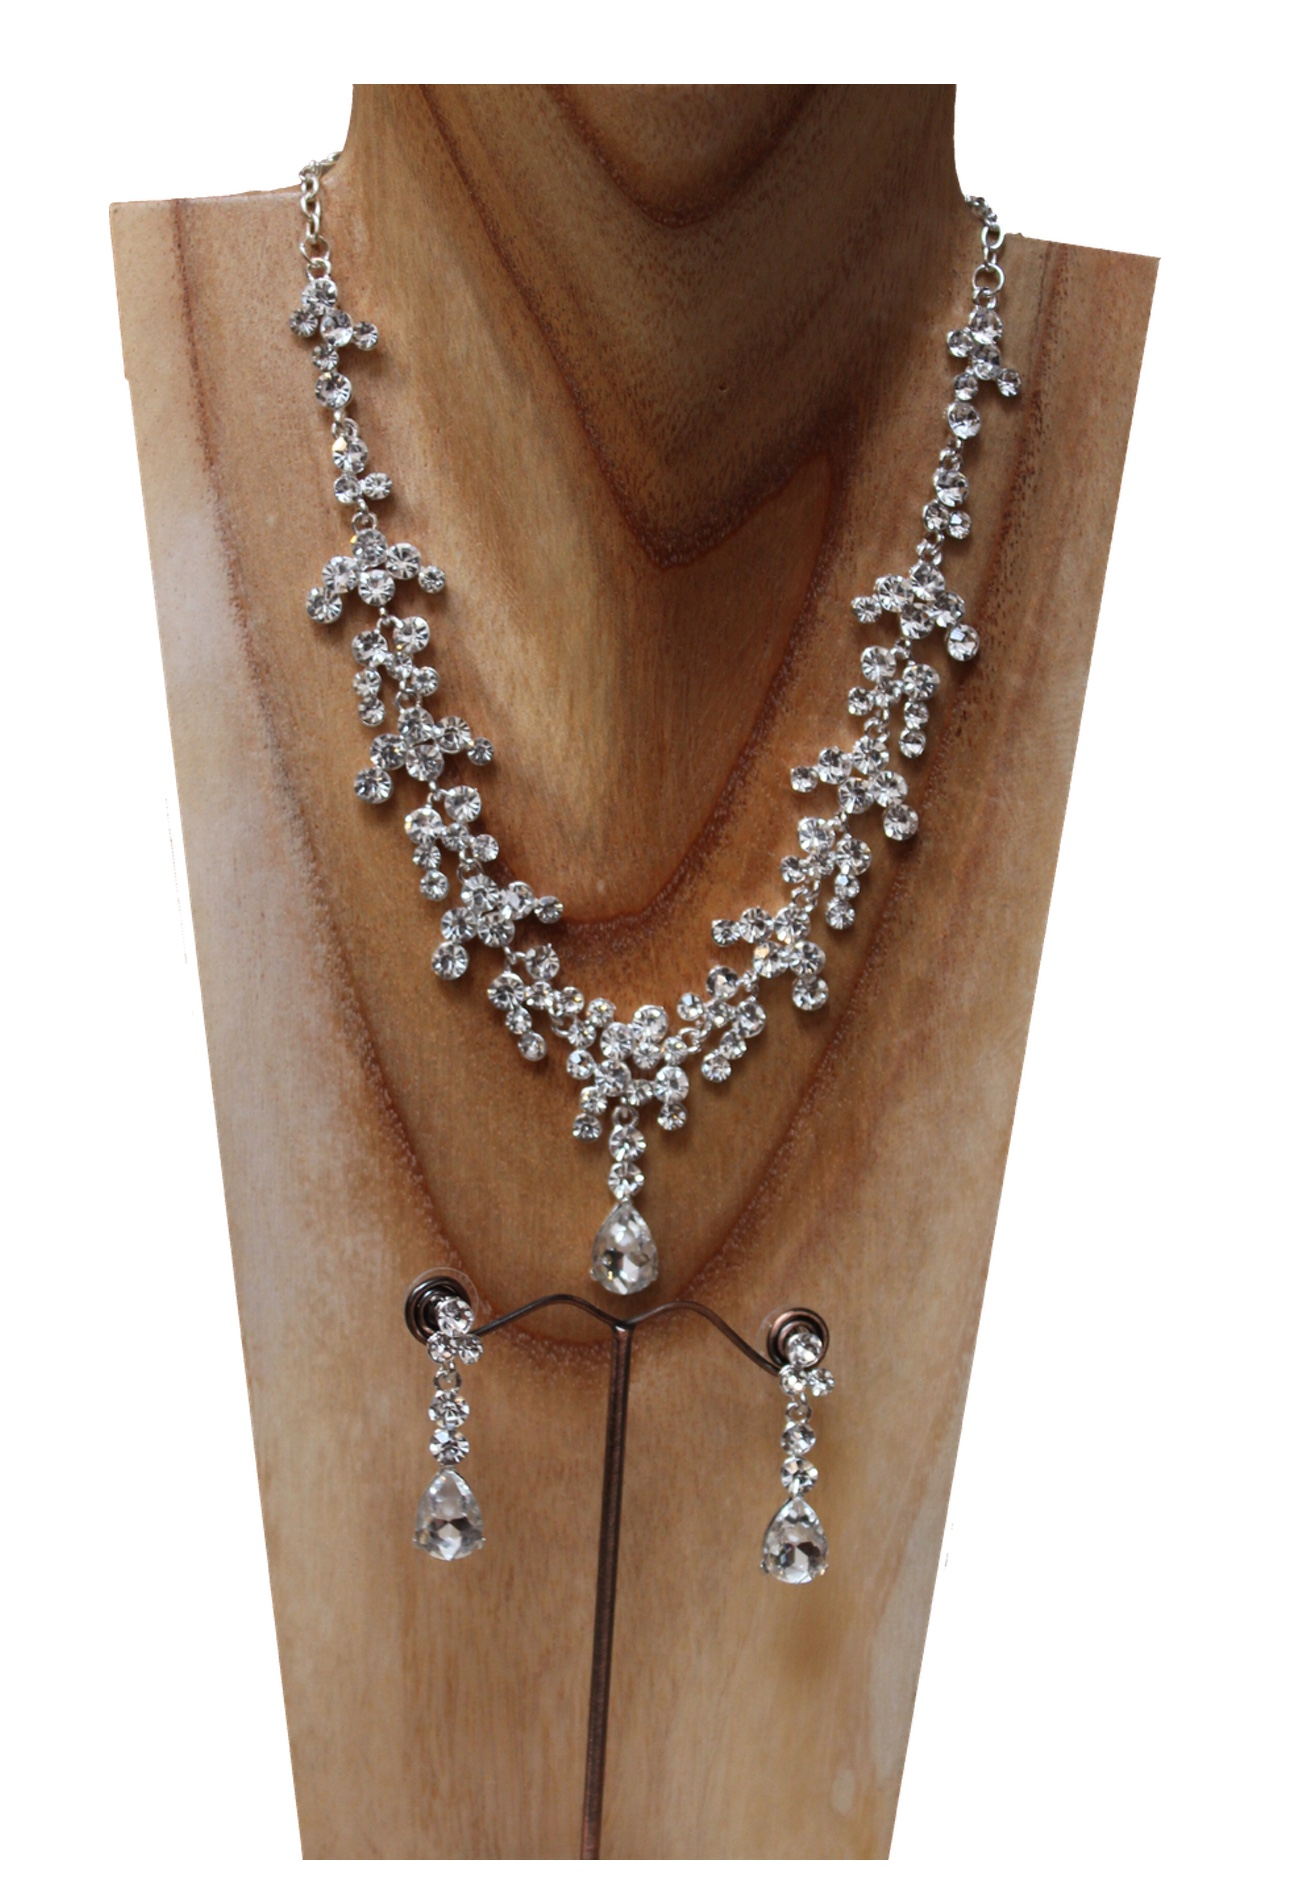 diamante necklace and earrings set.jpg